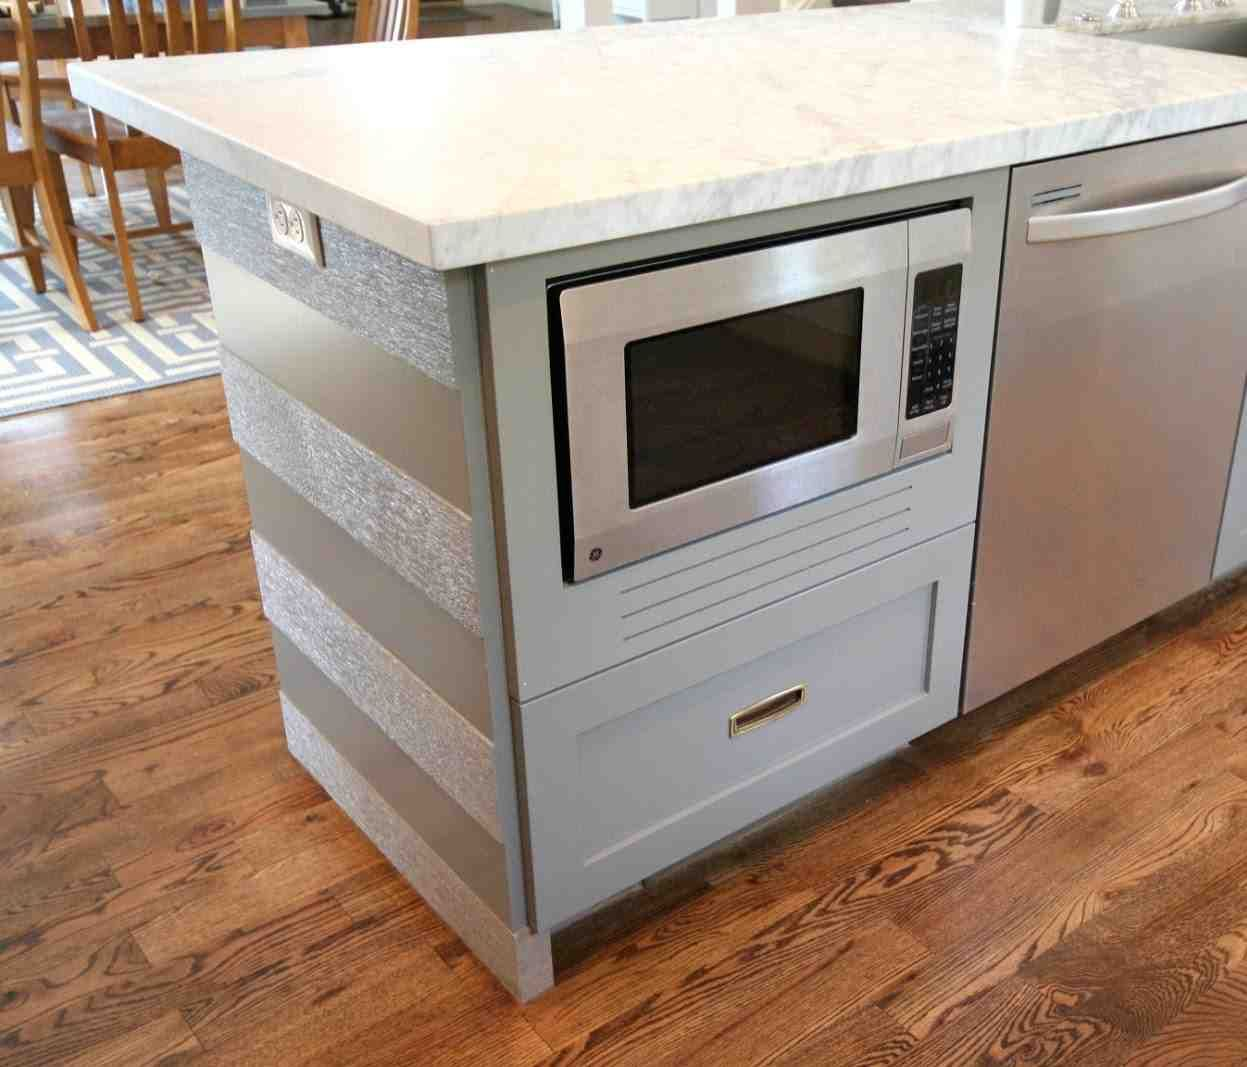 microwave base cabinet better base cabinets built in microwave rh pinterest com